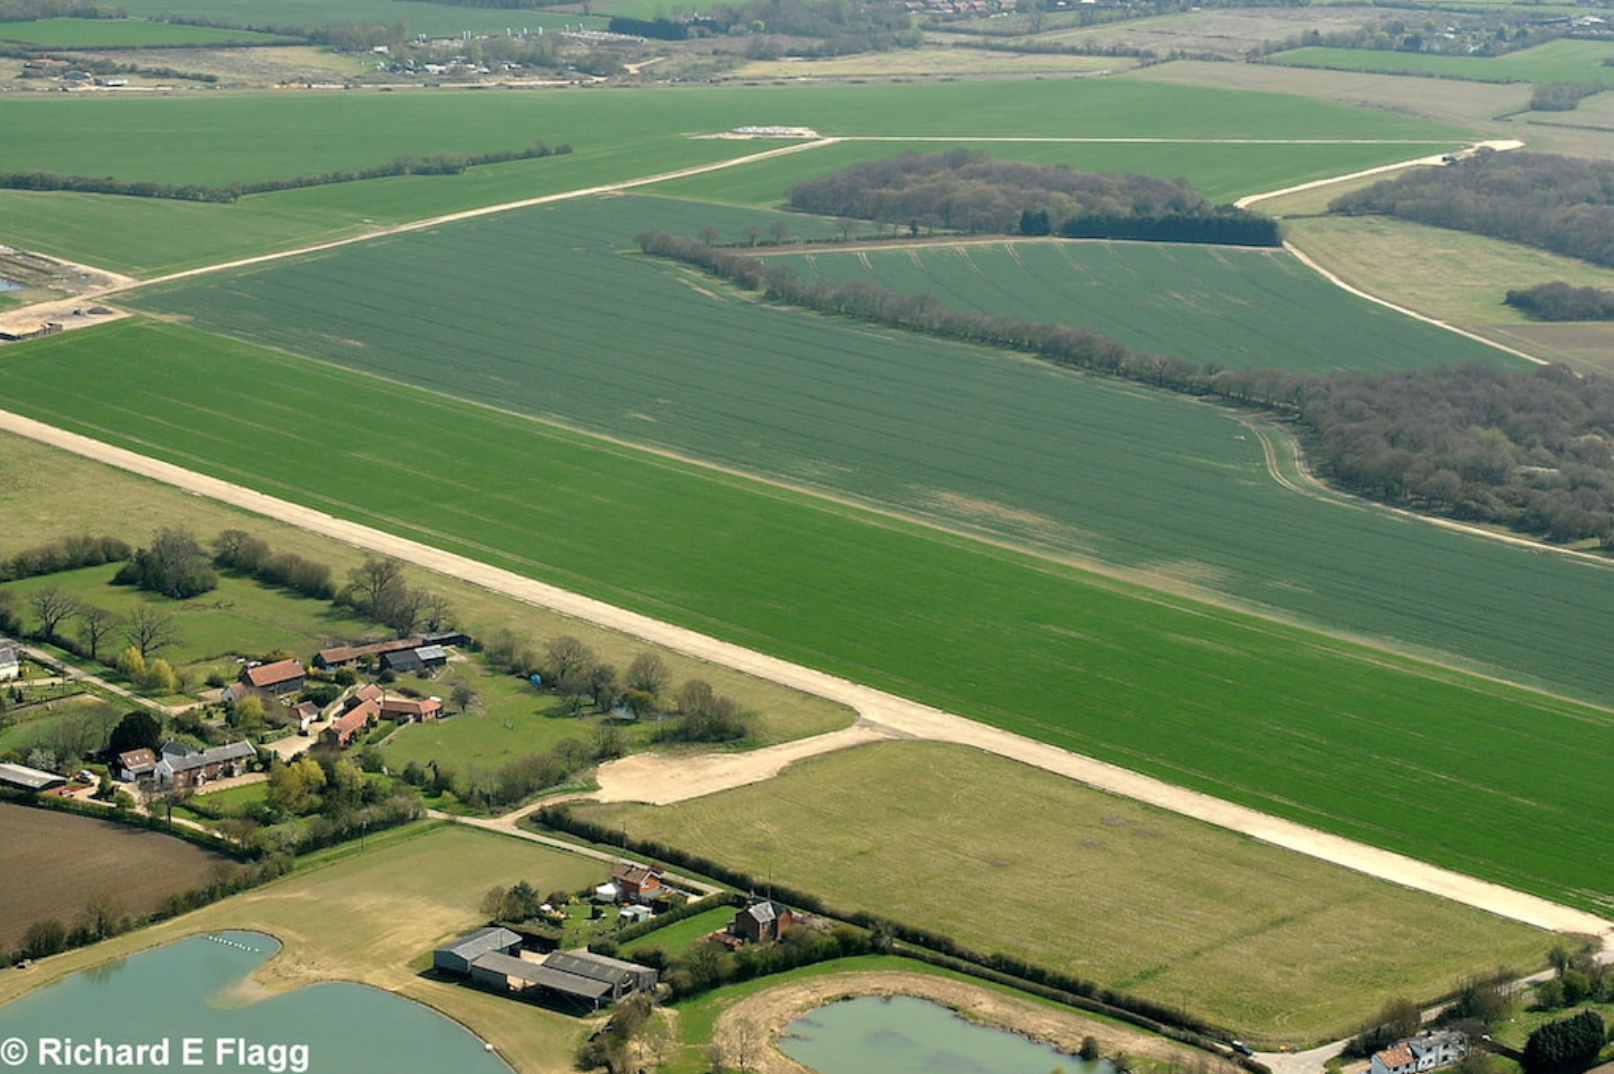 002Aerial View of Langmere Airstrip - 18 April 2010.png